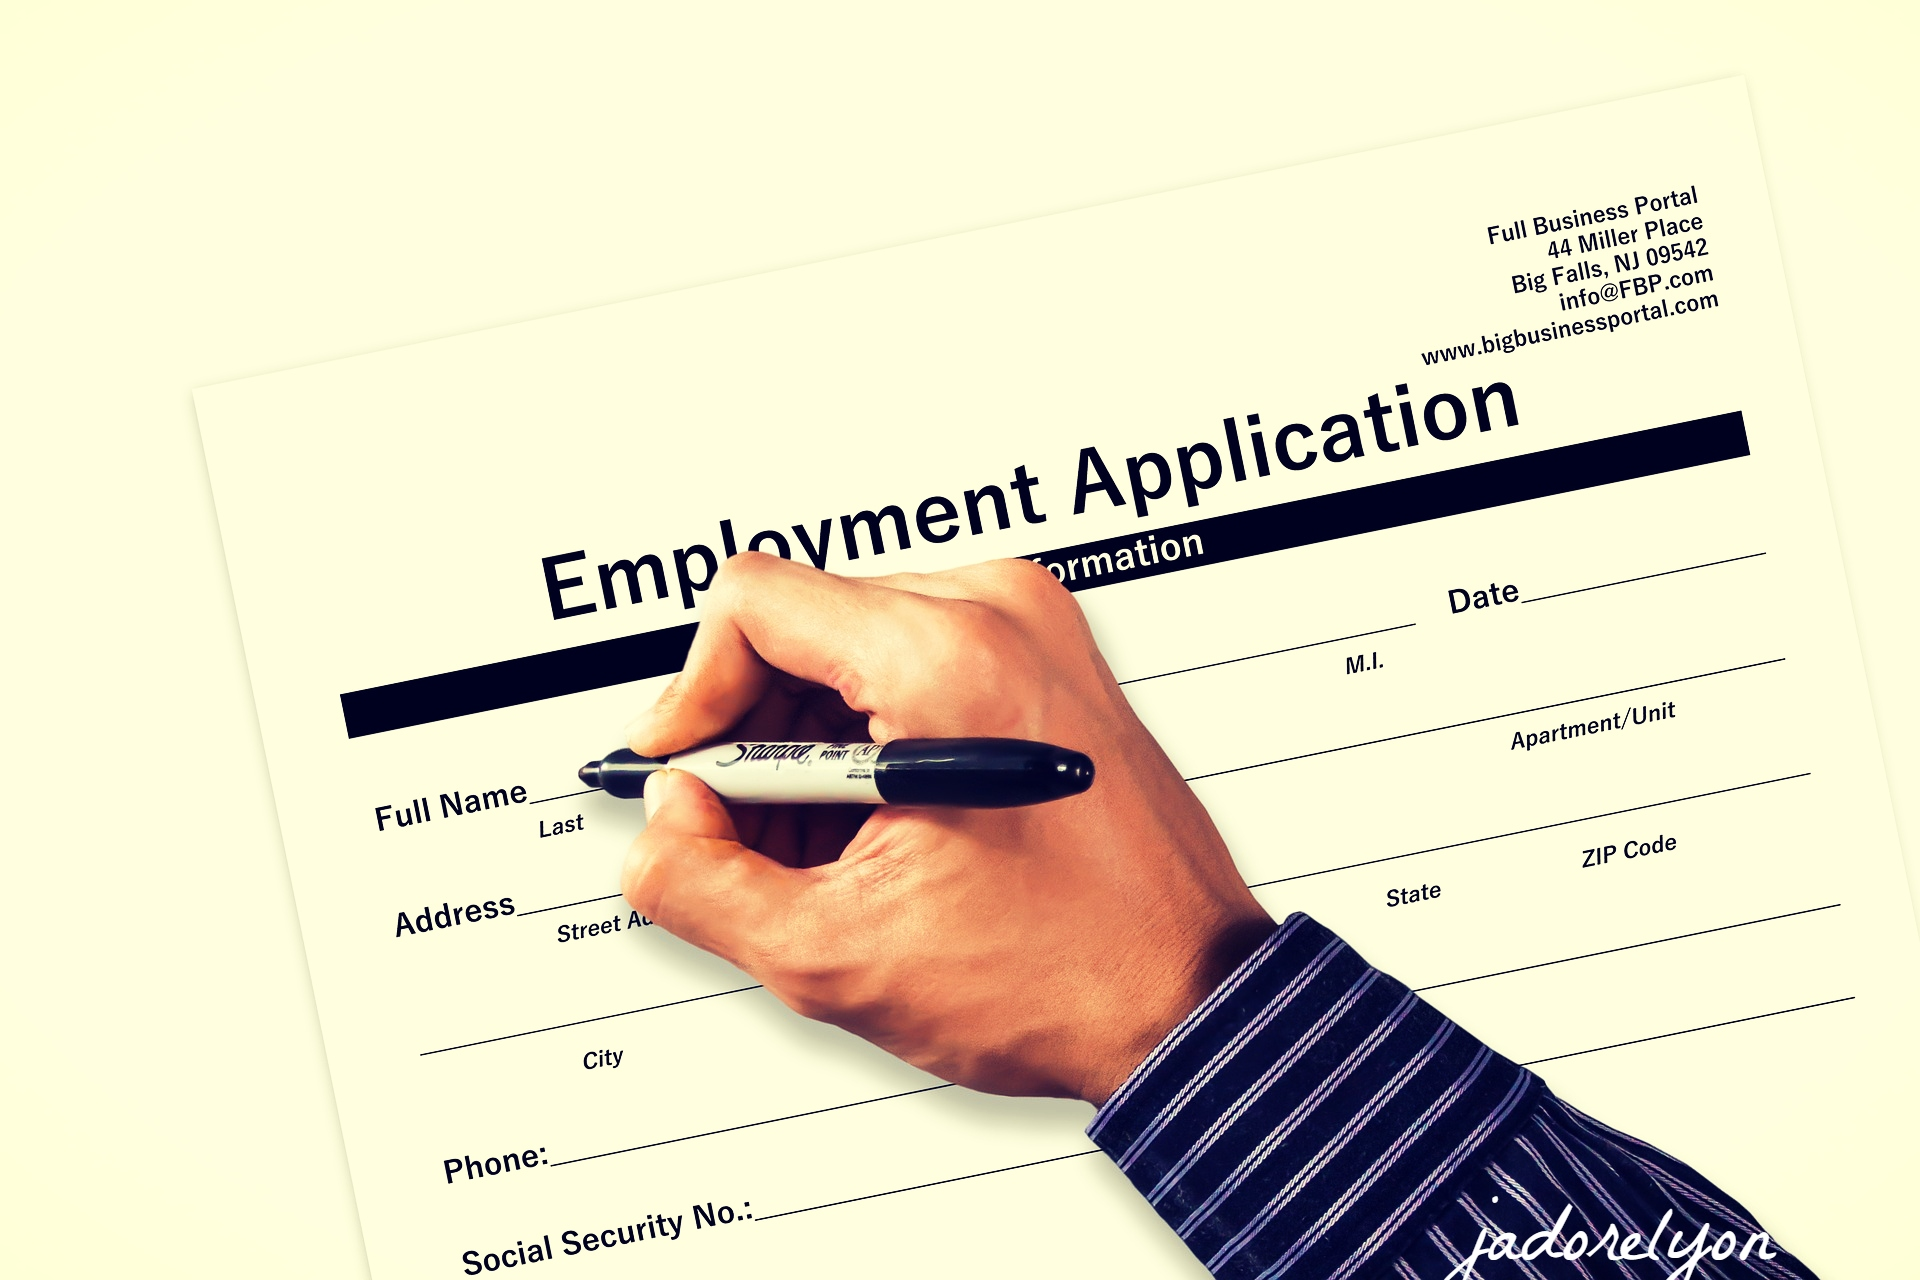 Register with local job center